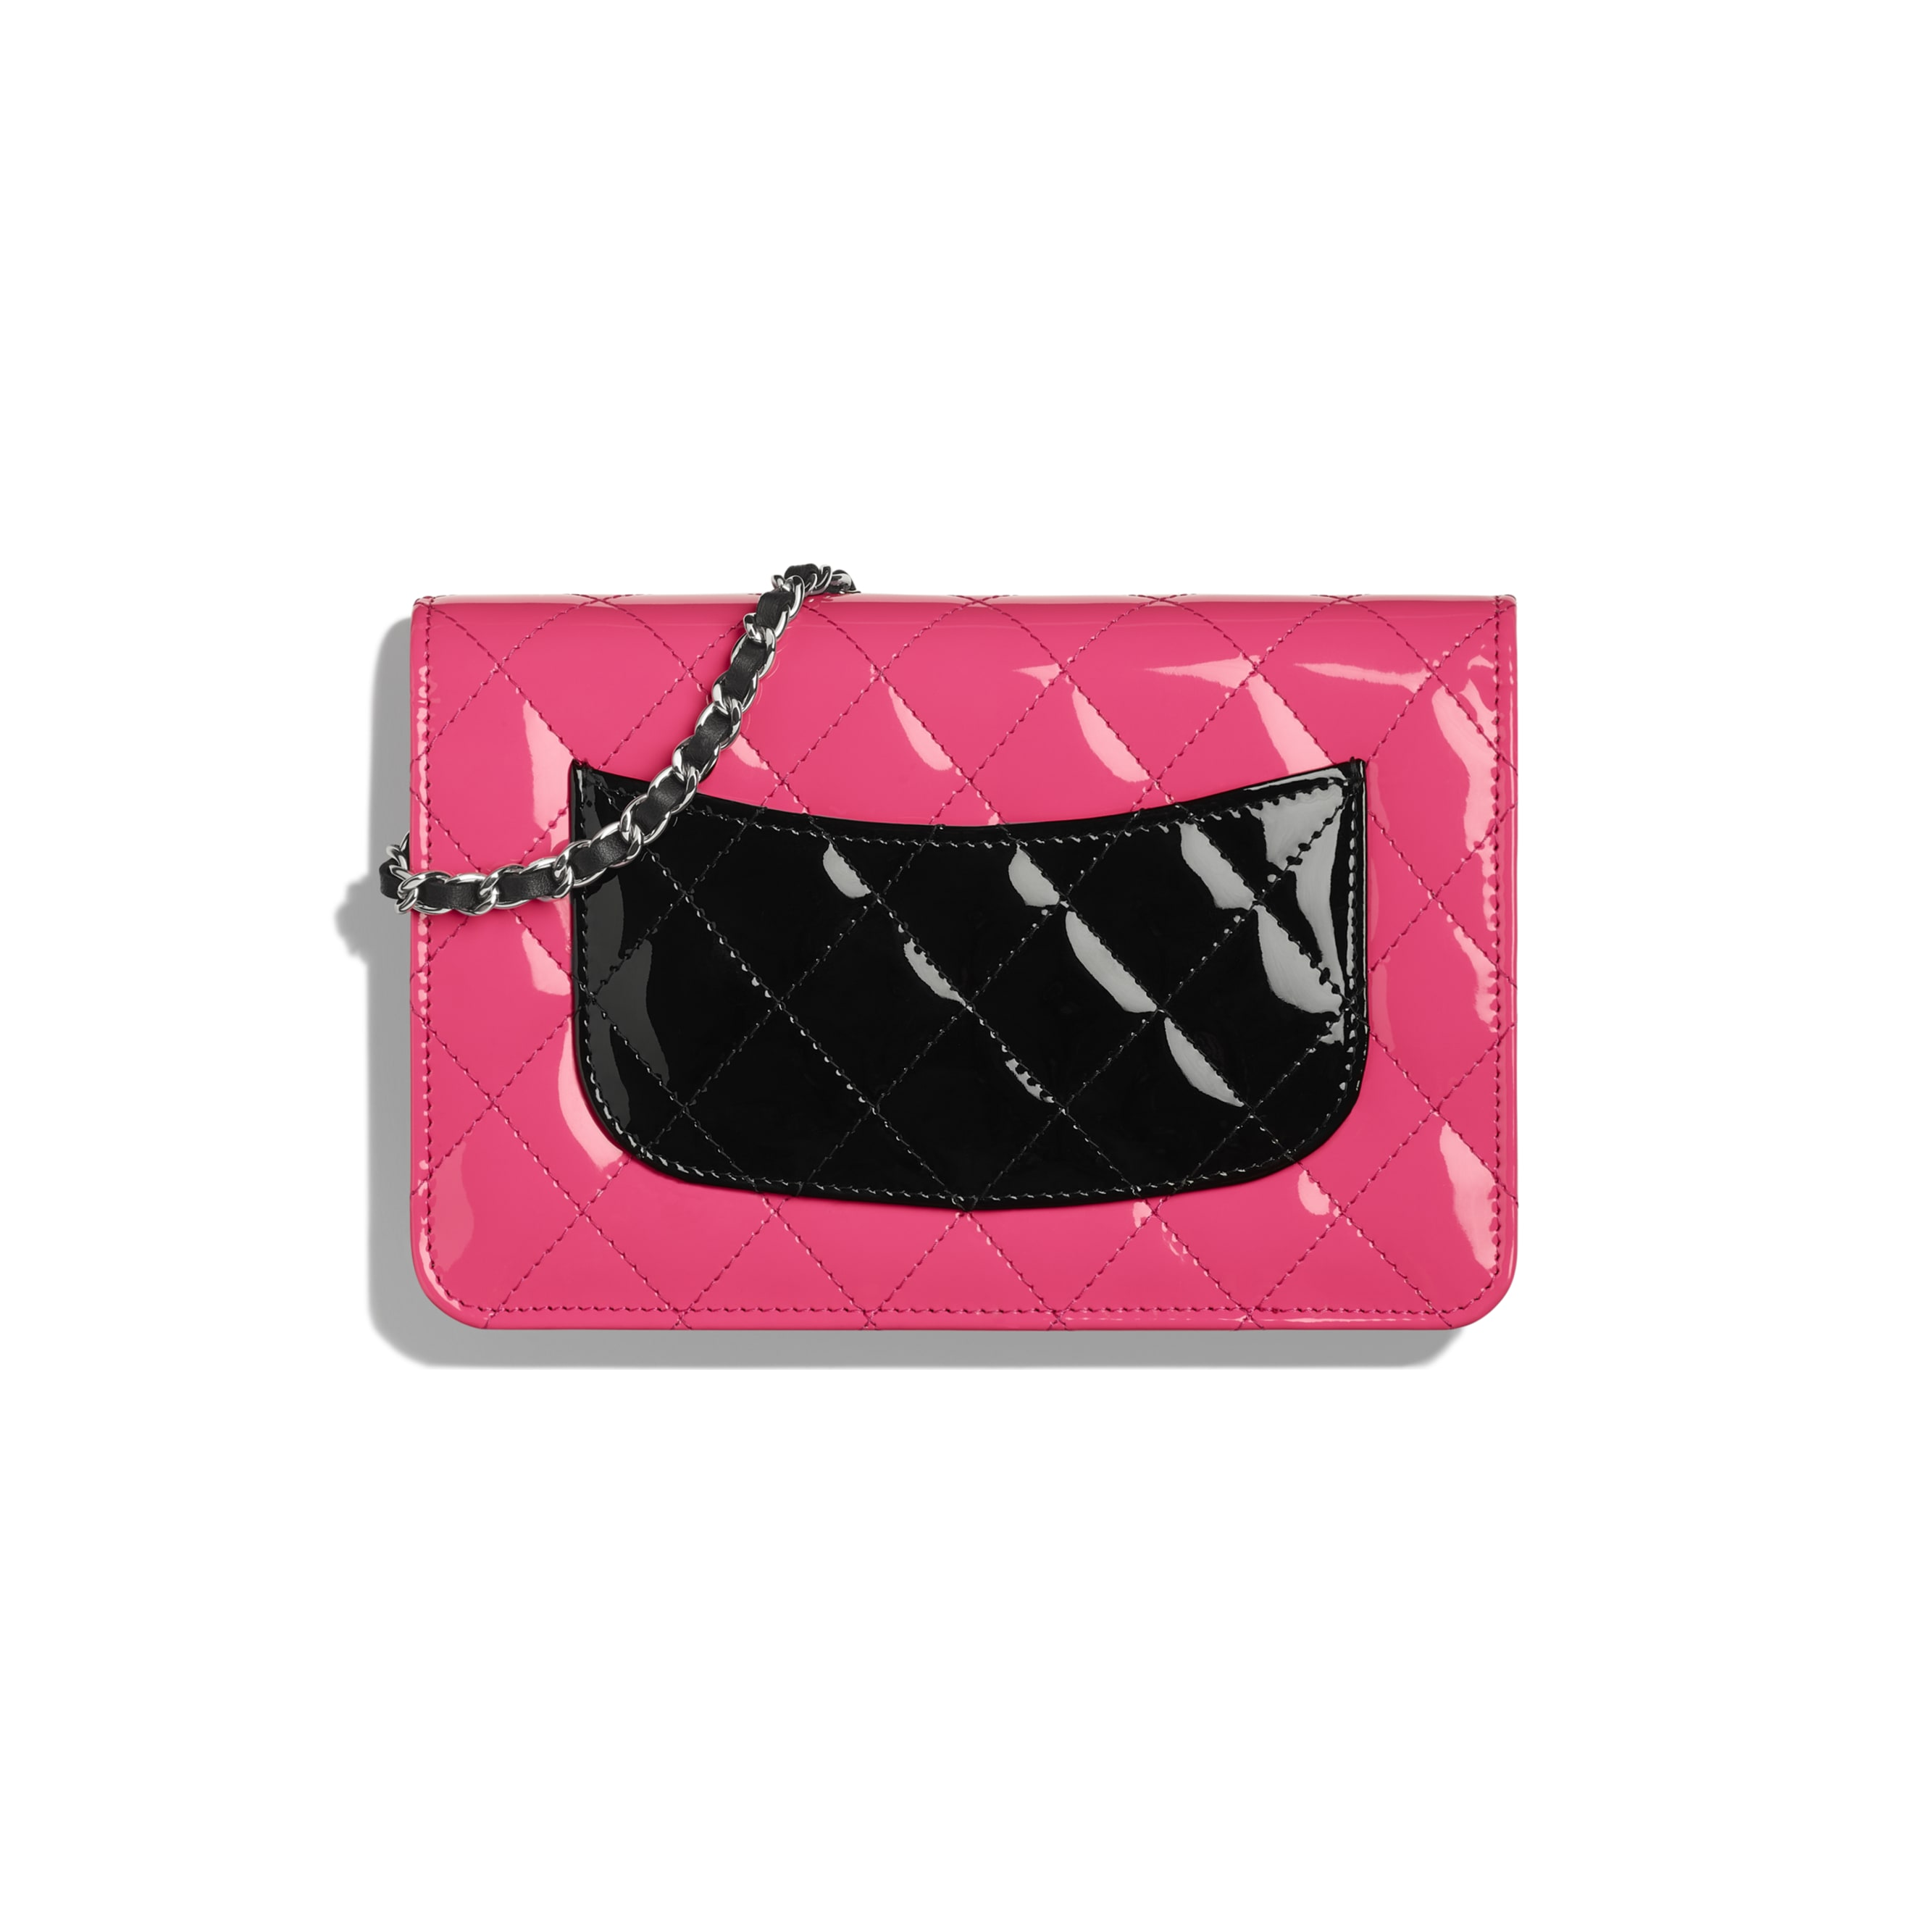 Classic Wallet on Chain - Pink & Black - Patent Calfskin & Silver-Tone Metal - CHANEL - Alternative view - see standard sized version